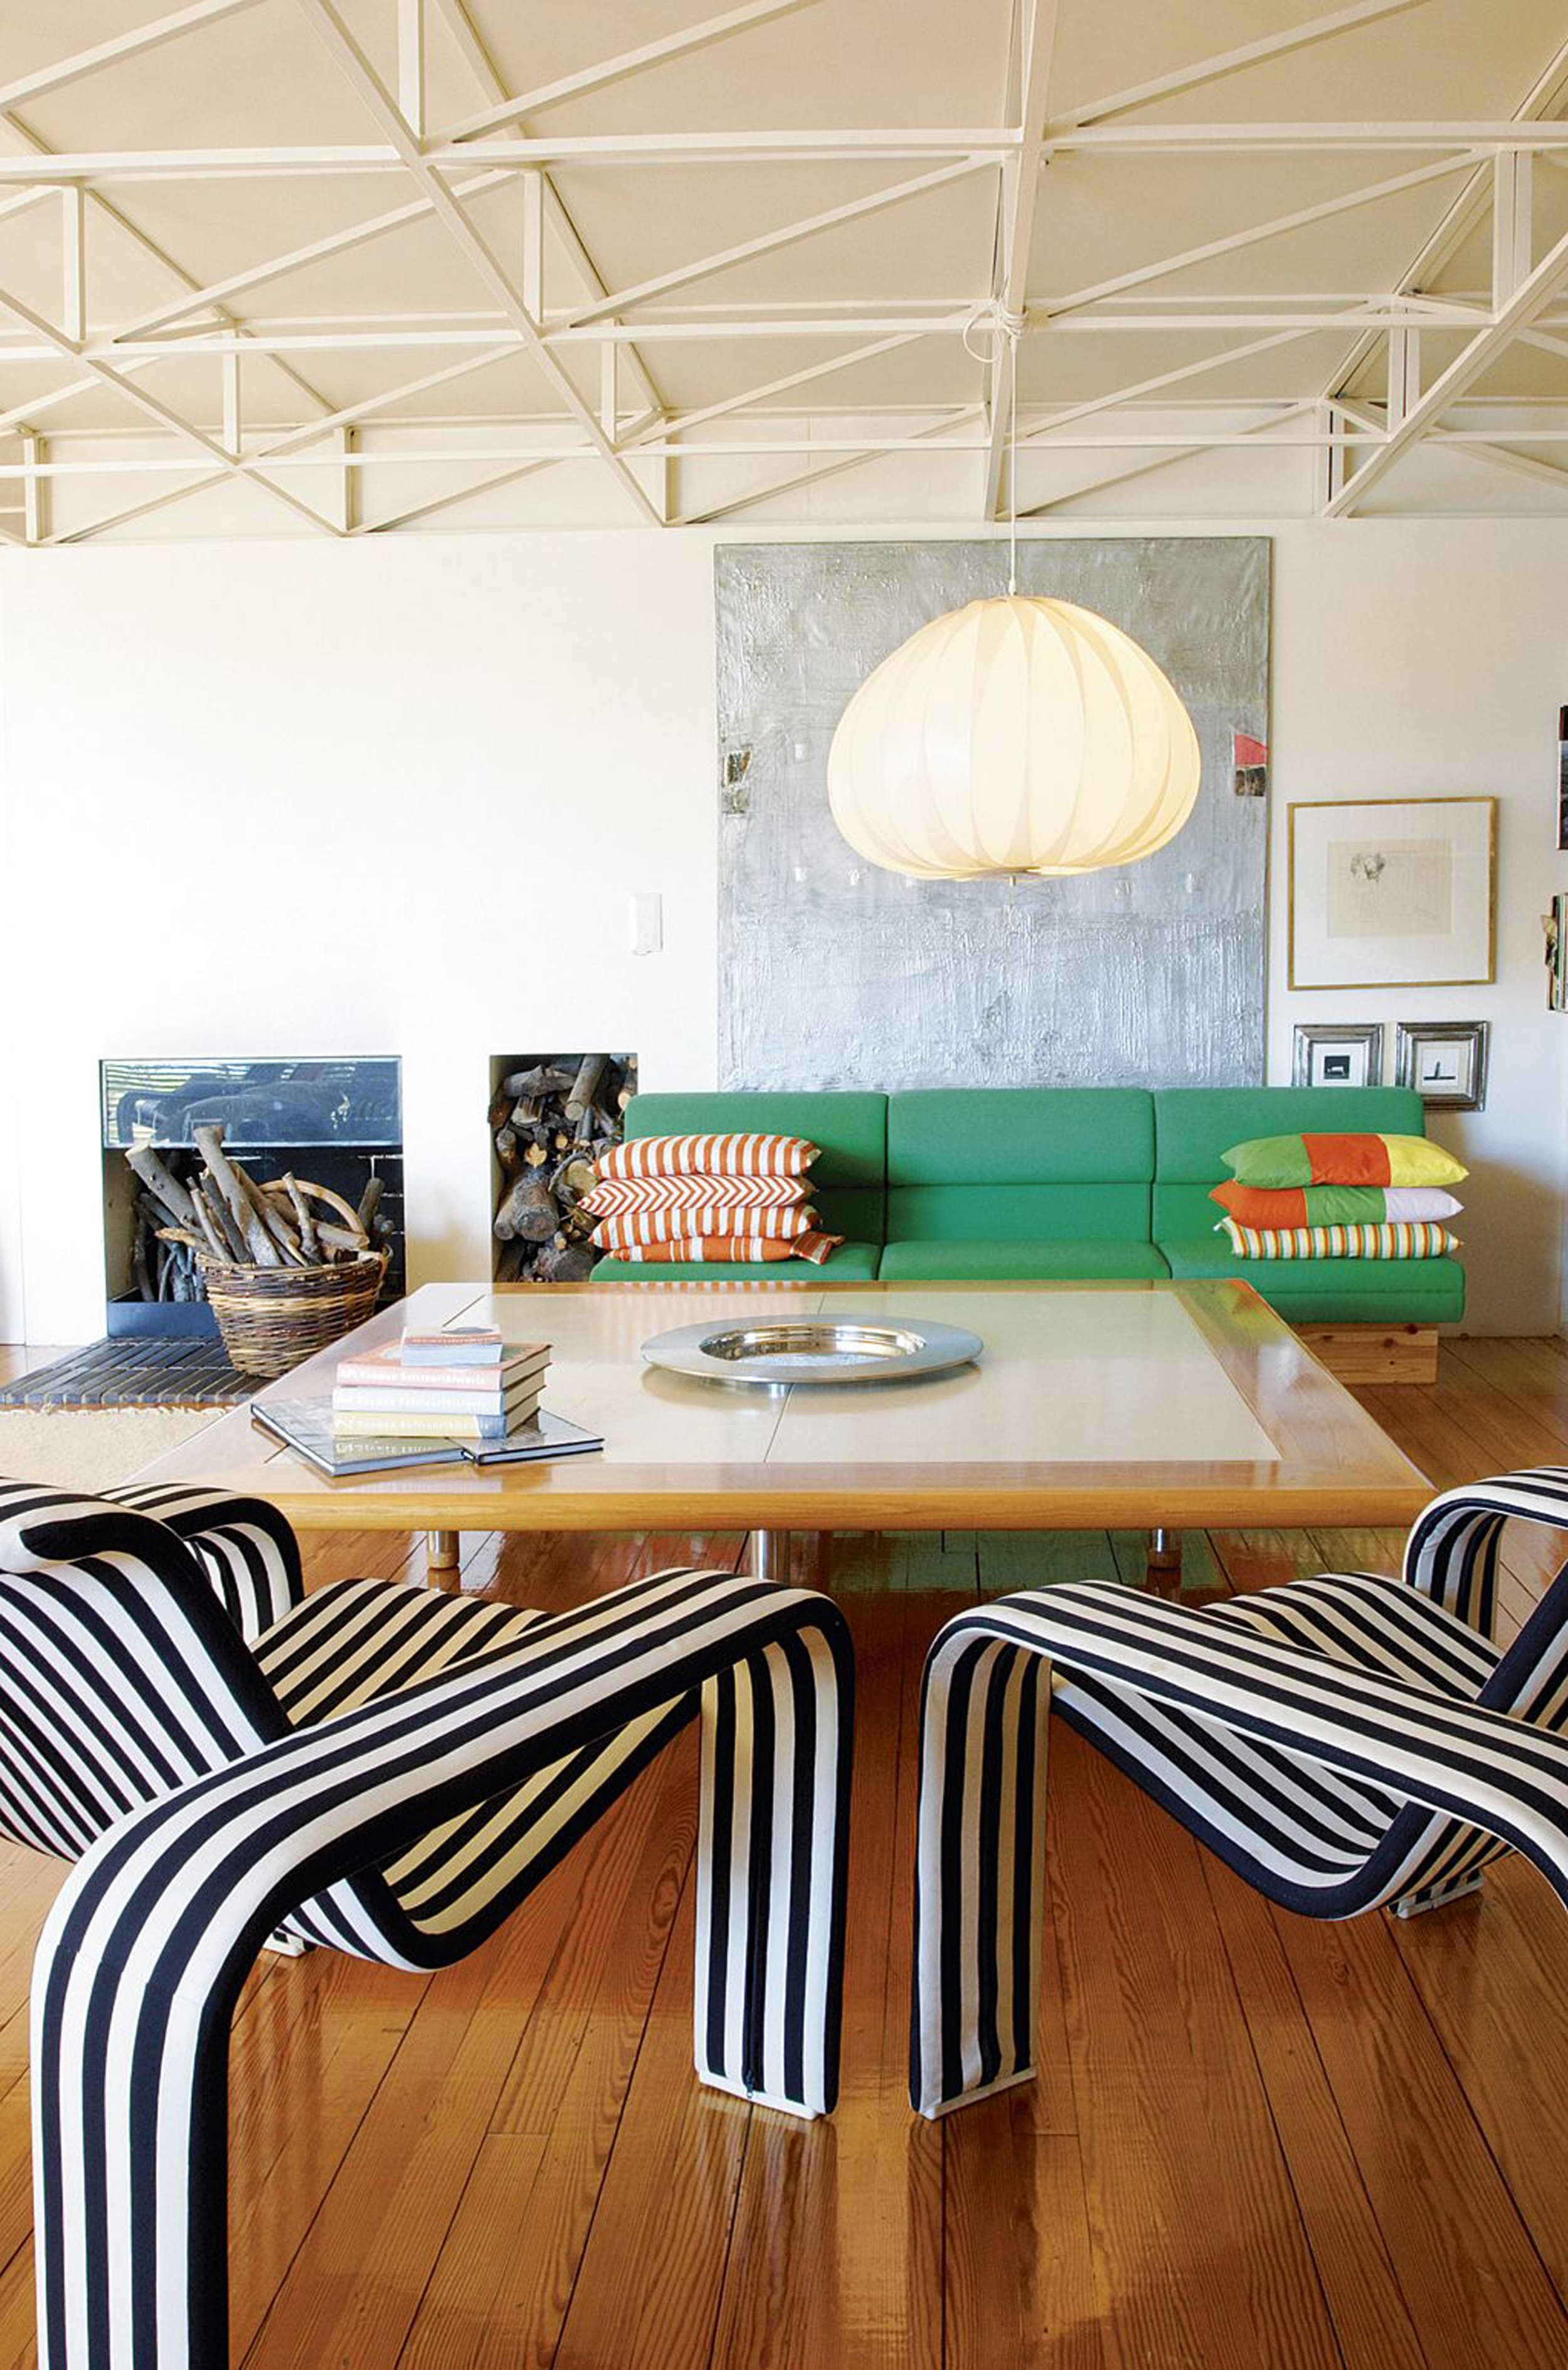 2019 Design Trends Why You Should Know About New Postmodern Furniture Design Interior Interior Design